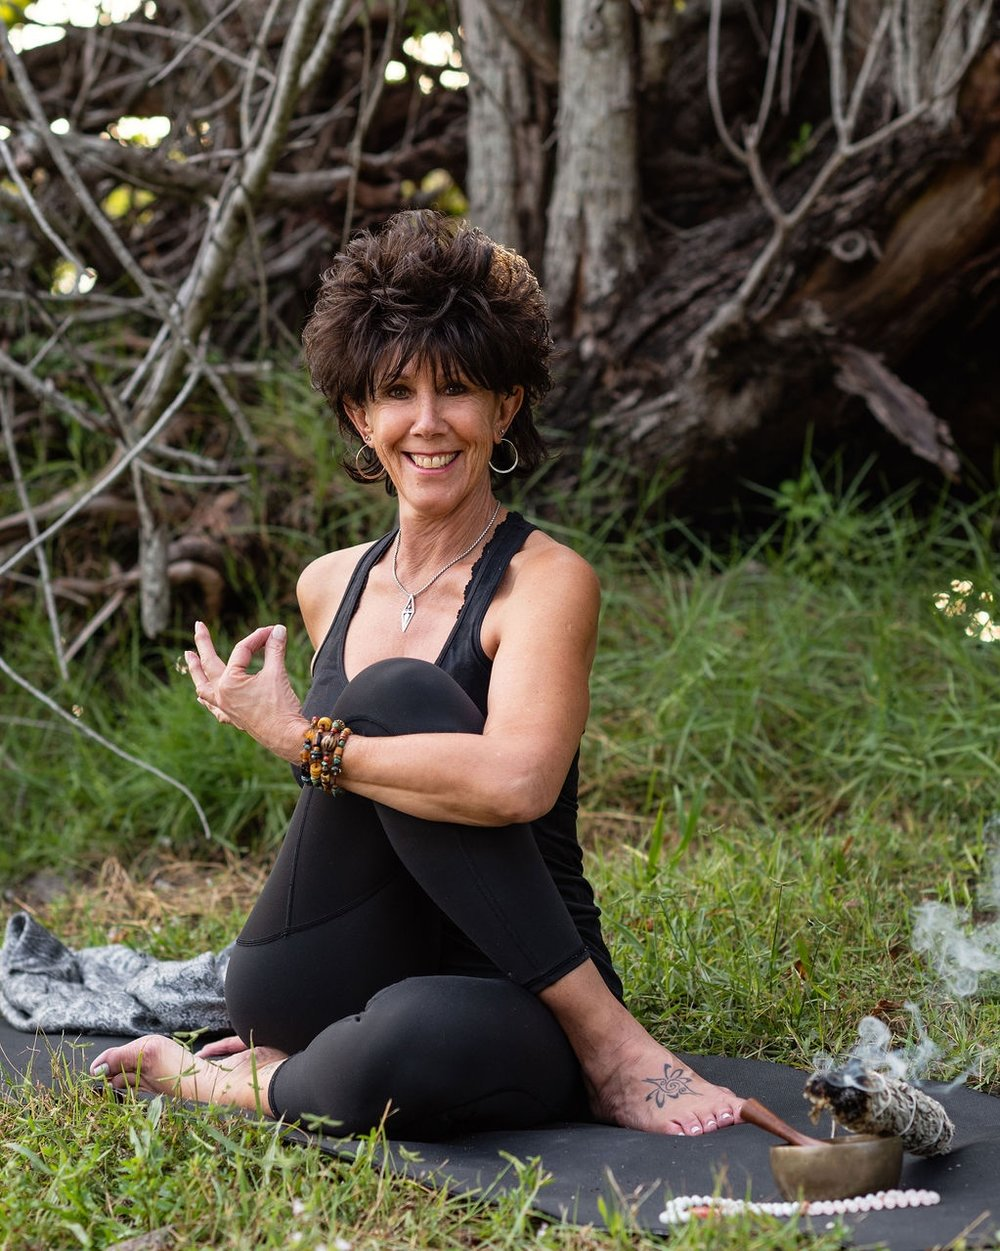 Mindy Leventhal, Simply Yoga of Delray Beach